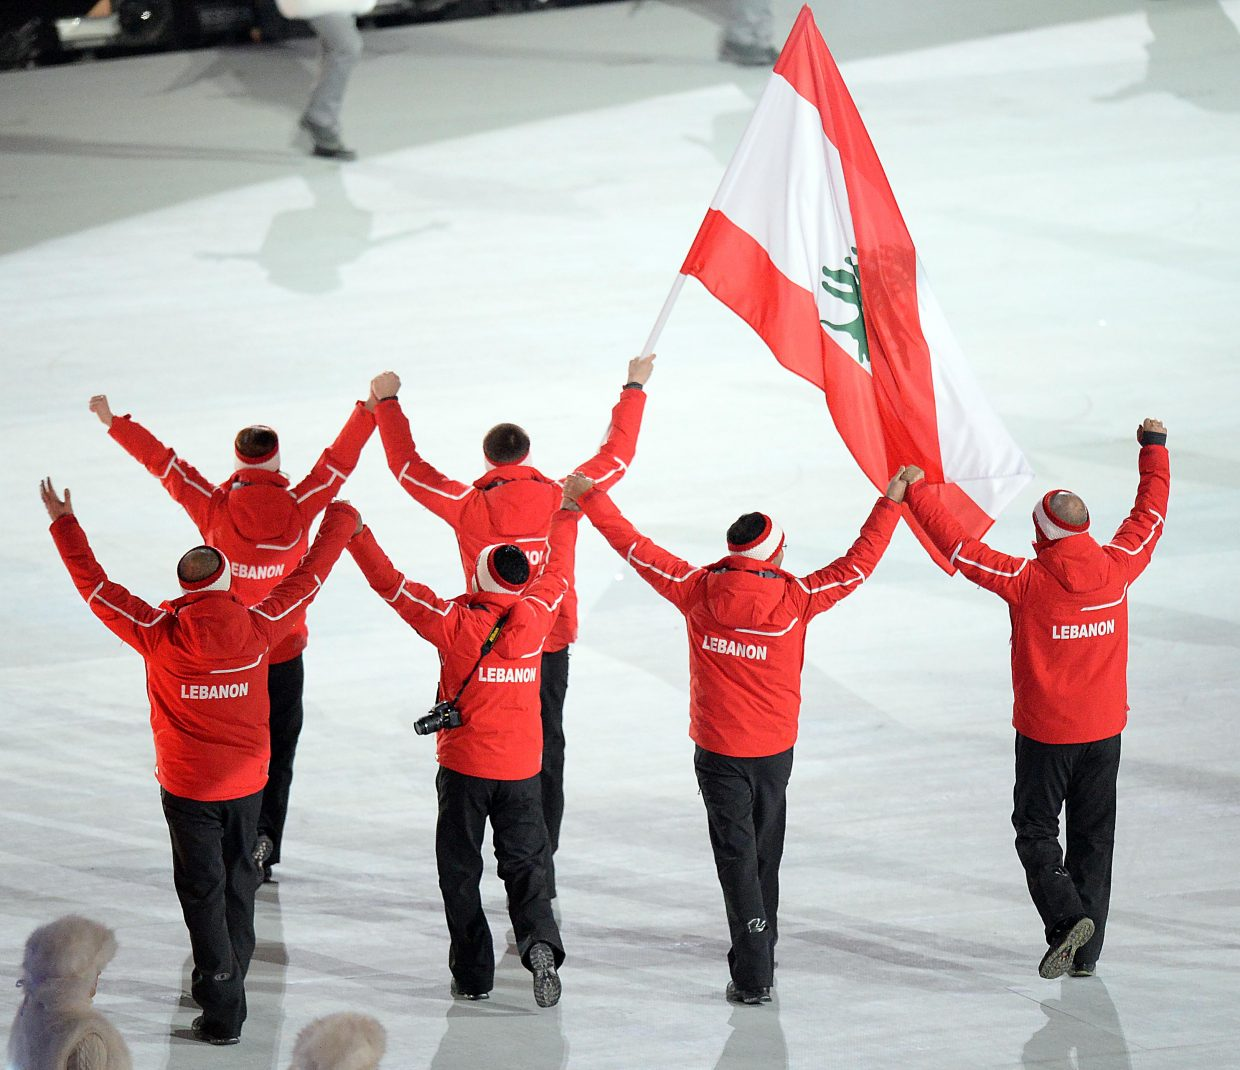 Team Lebanon marched hand in raised hand through the opening ceremony of the 2014 Winter Olympics on Friday.